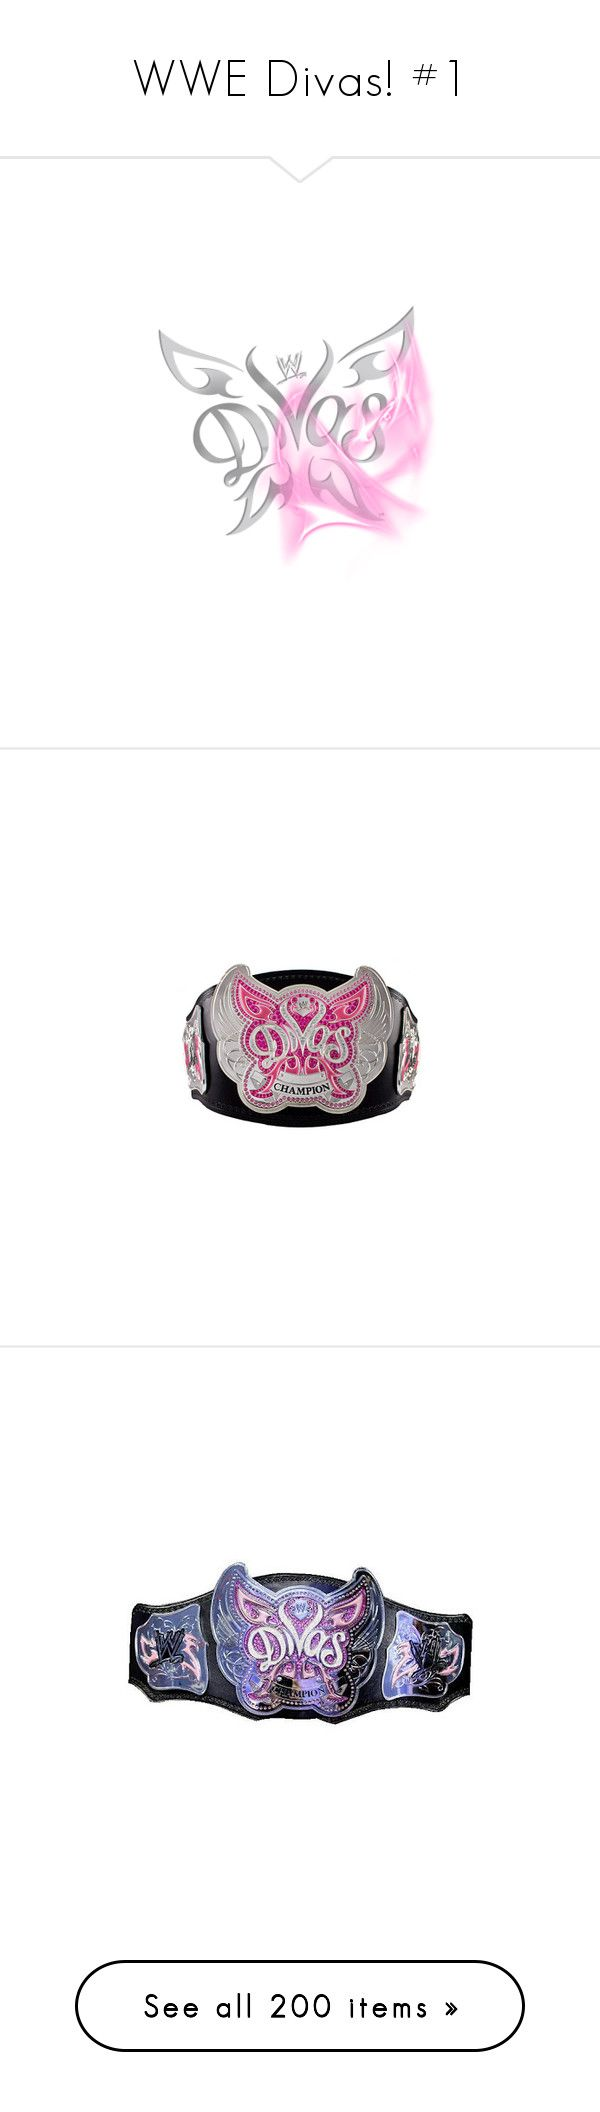 """WWE Divas! #1"" by elizabeth-stewart52 ❤ liked on Polyvore featuring wwe, shoes, wrestling, divas, jewelry, accessories, belts, wwe belts, rings and star ring"